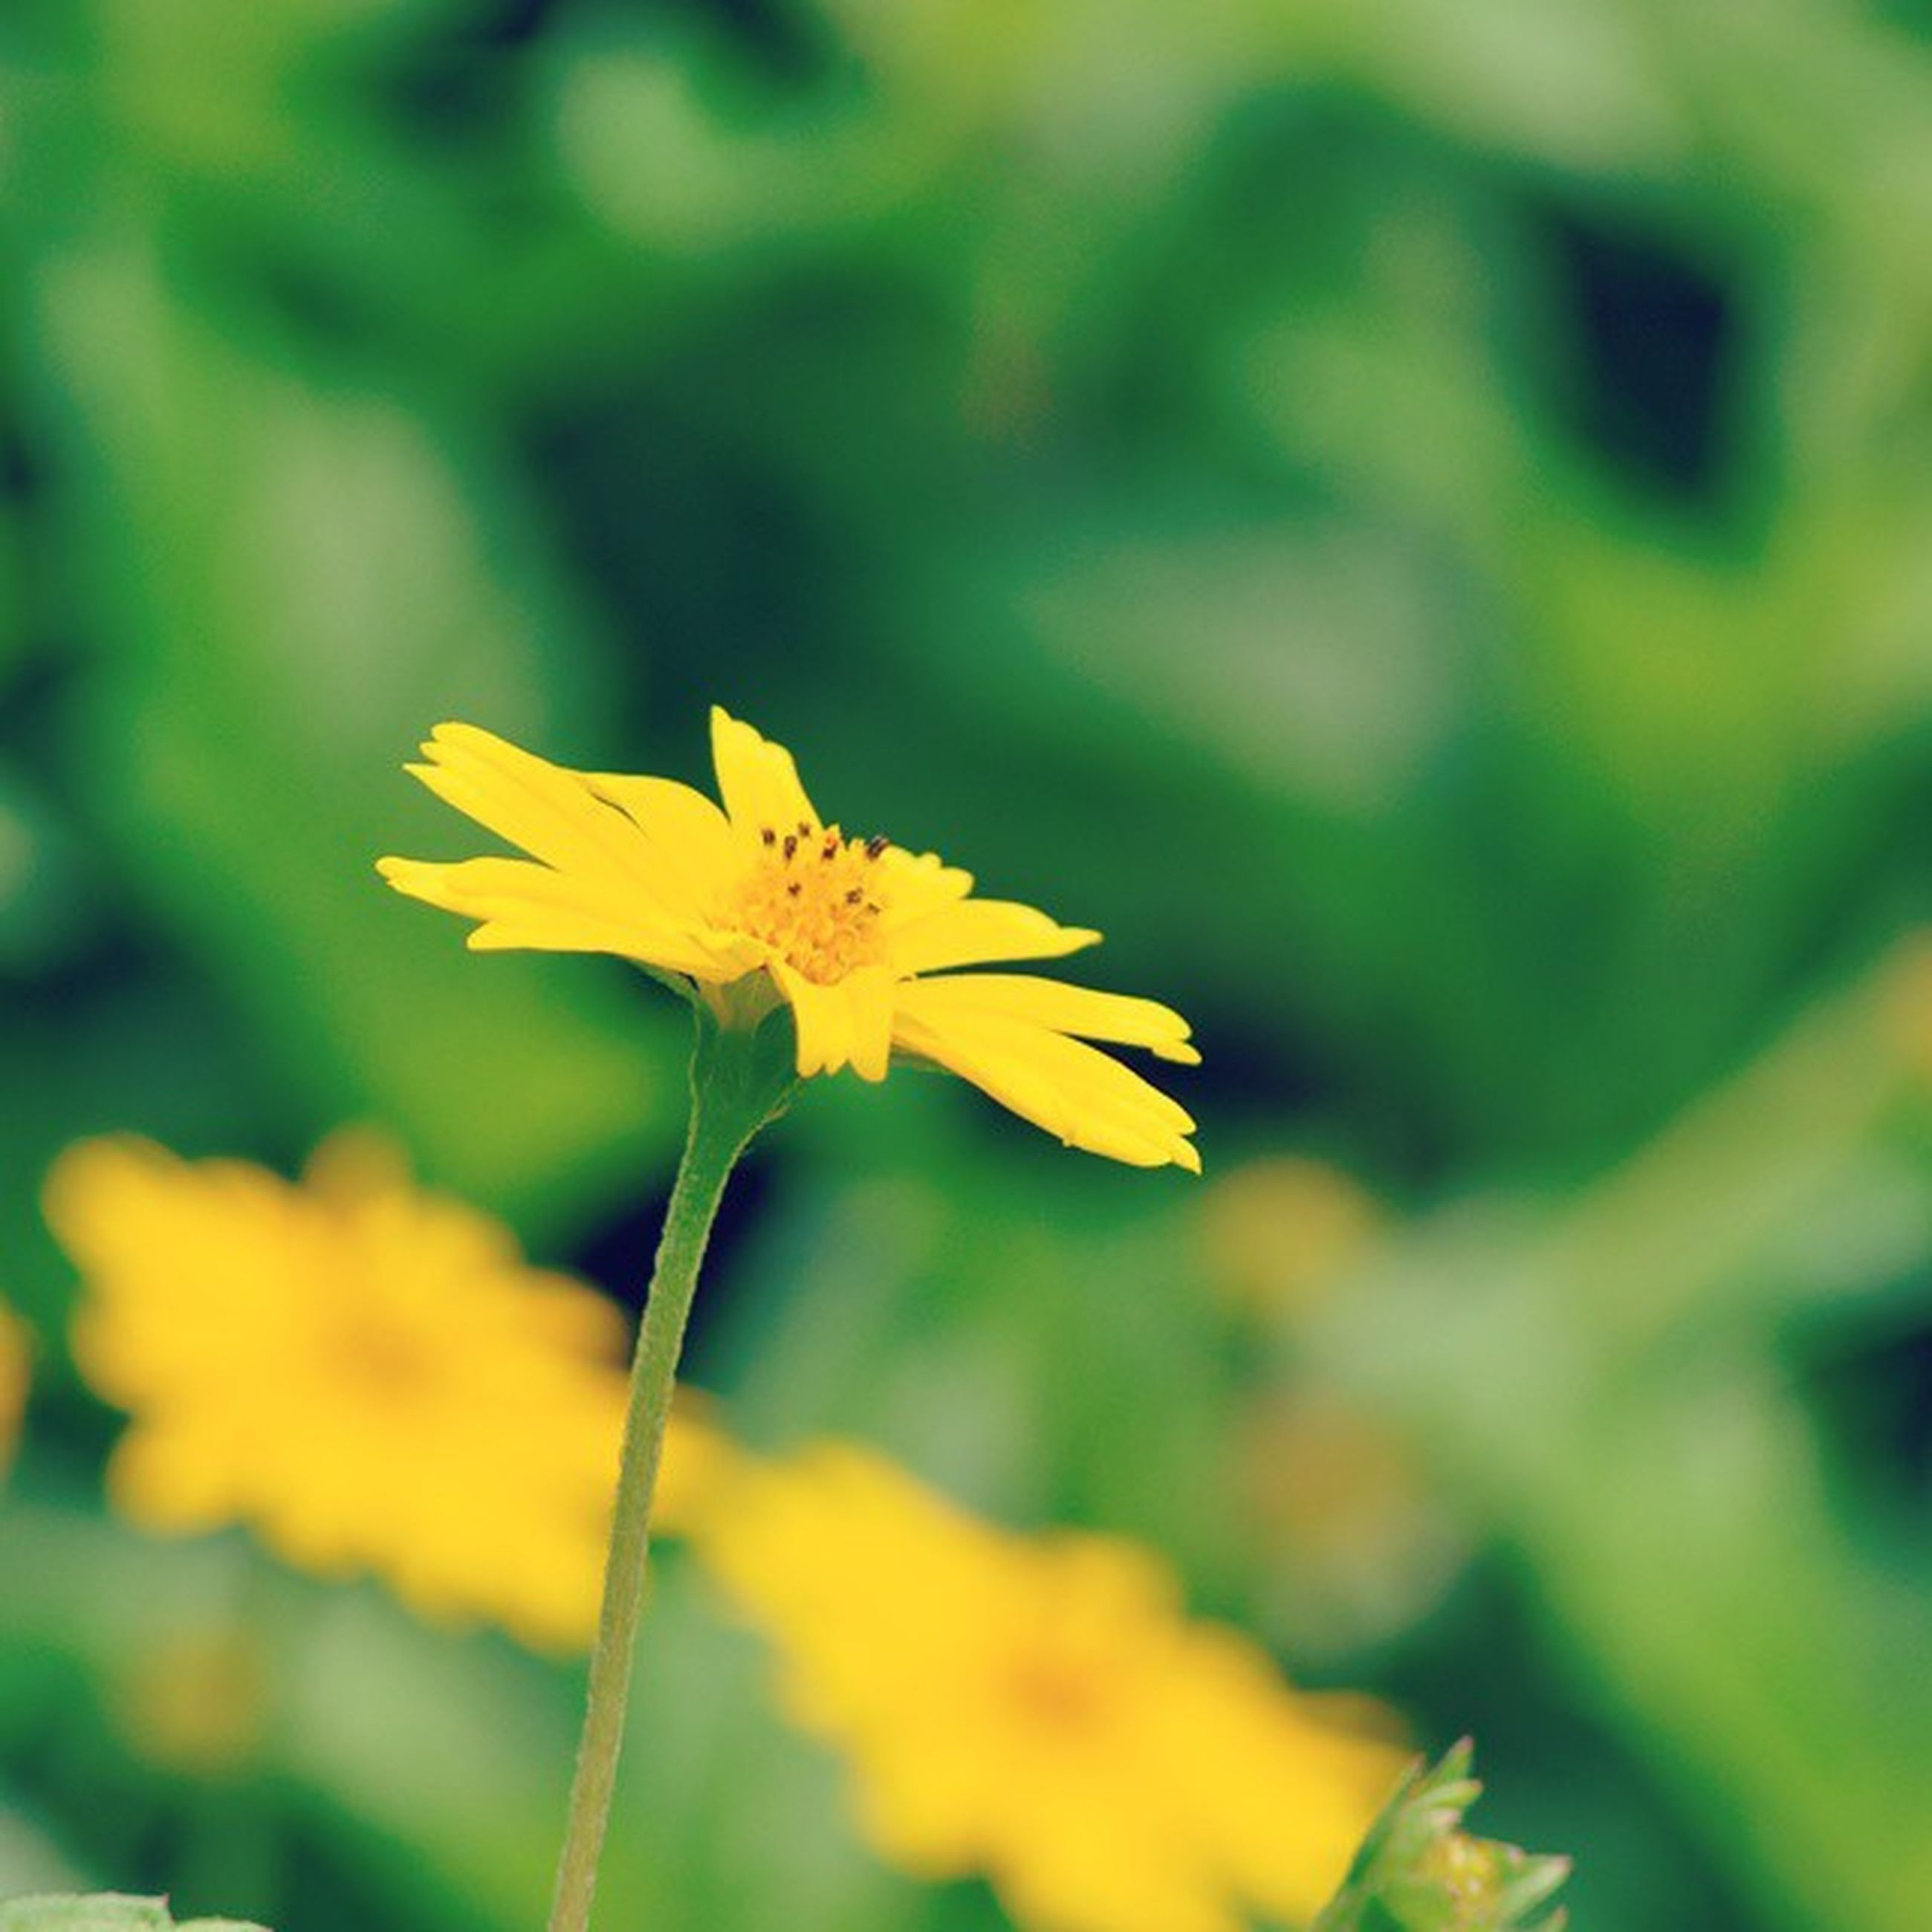 flower, petal, yellow, fragility, freshness, flower head, growth, focus on foreground, beauty in nature, close-up, blooming, nature, plant, stem, single flower, in bloom, blossom, selective focus, field, pollen